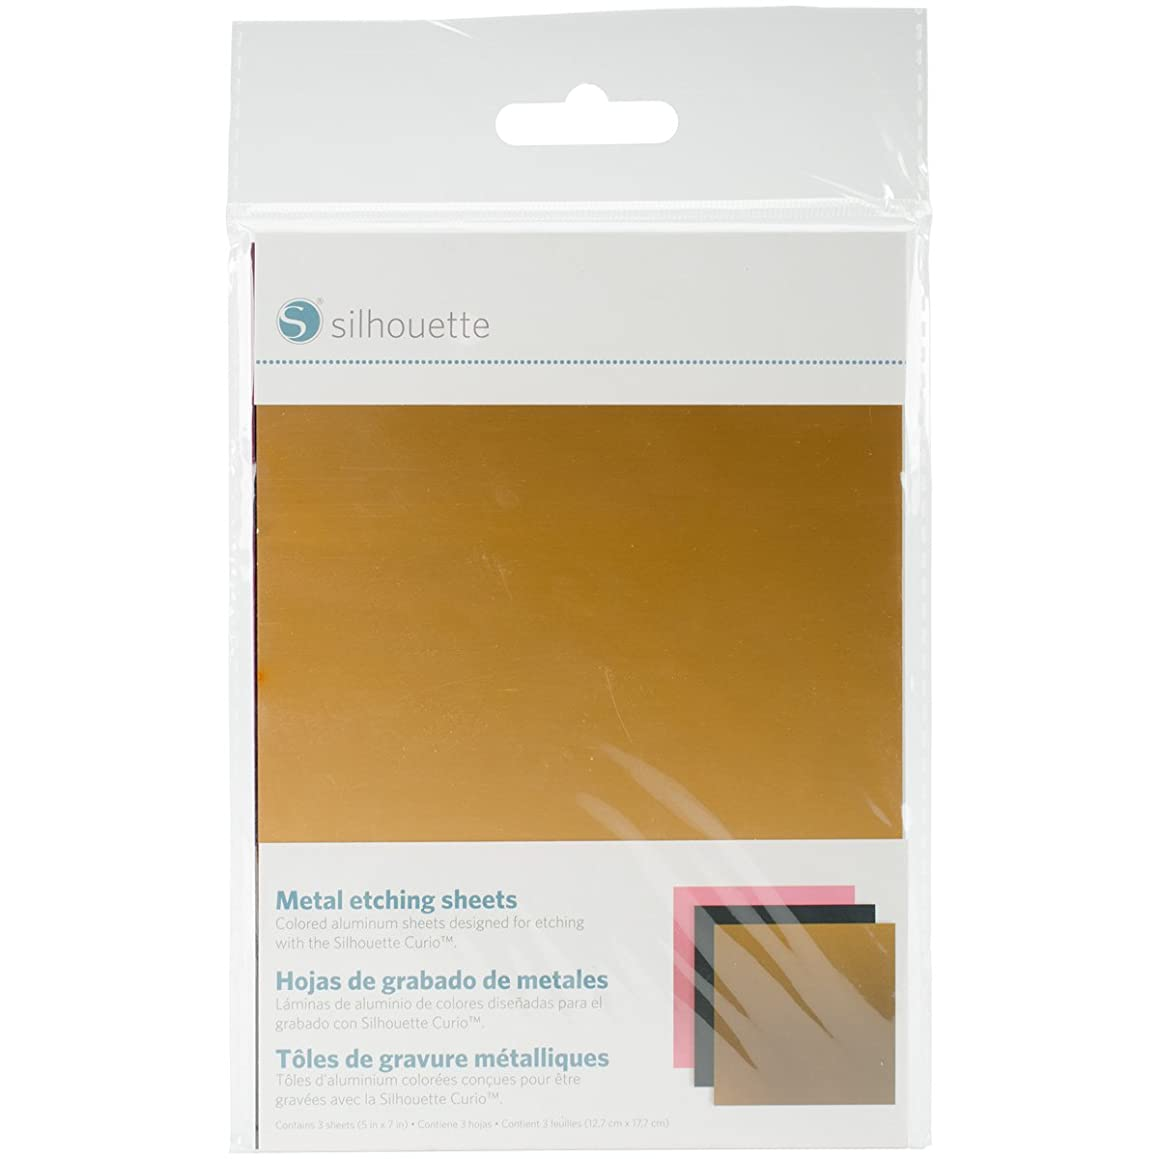 Silhouette Metal-Etch Metal Etching Sheets